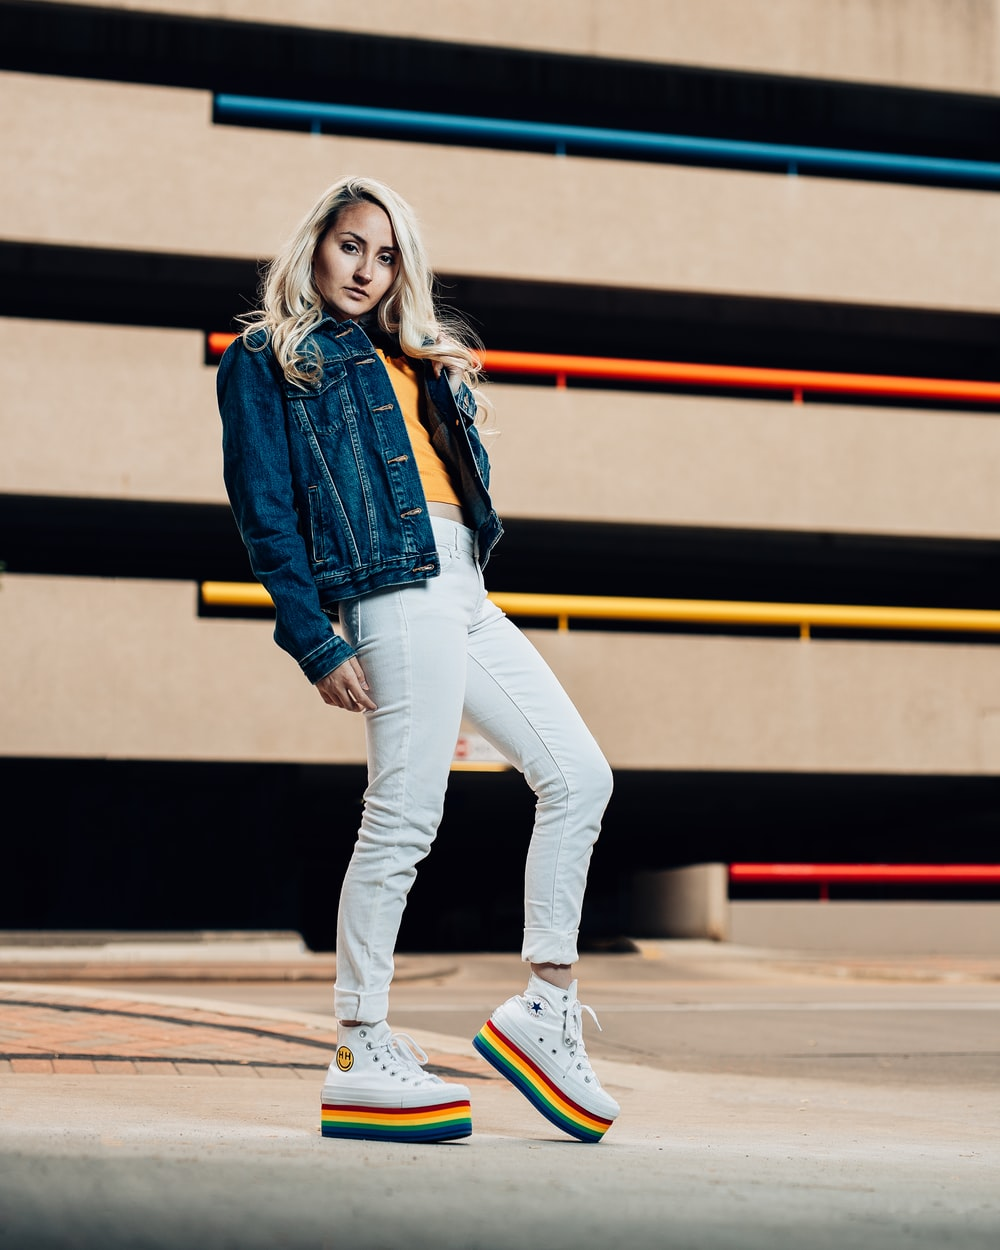 woman in blue denim jacket and white pants wearing white sneakers